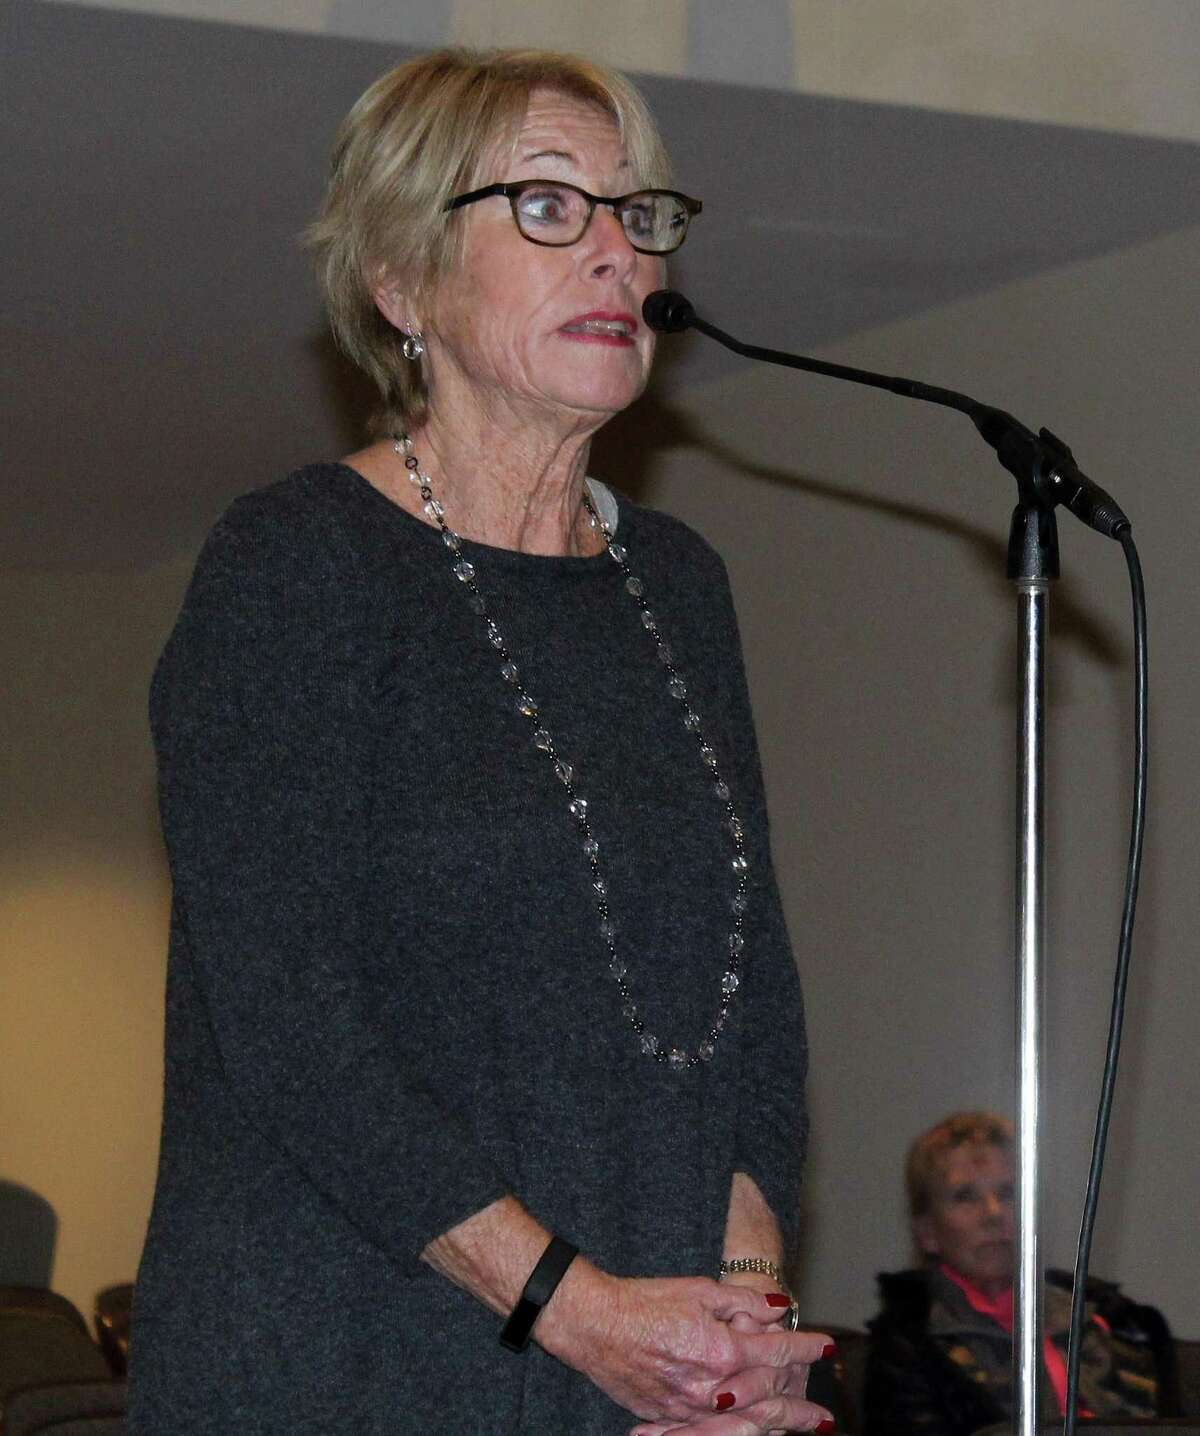 Westport resident Judy Holod spoke about Compo Beach conditions last summer at a Park and Recreation Commission meeting on Dec. 20 in Westport Town Hall.